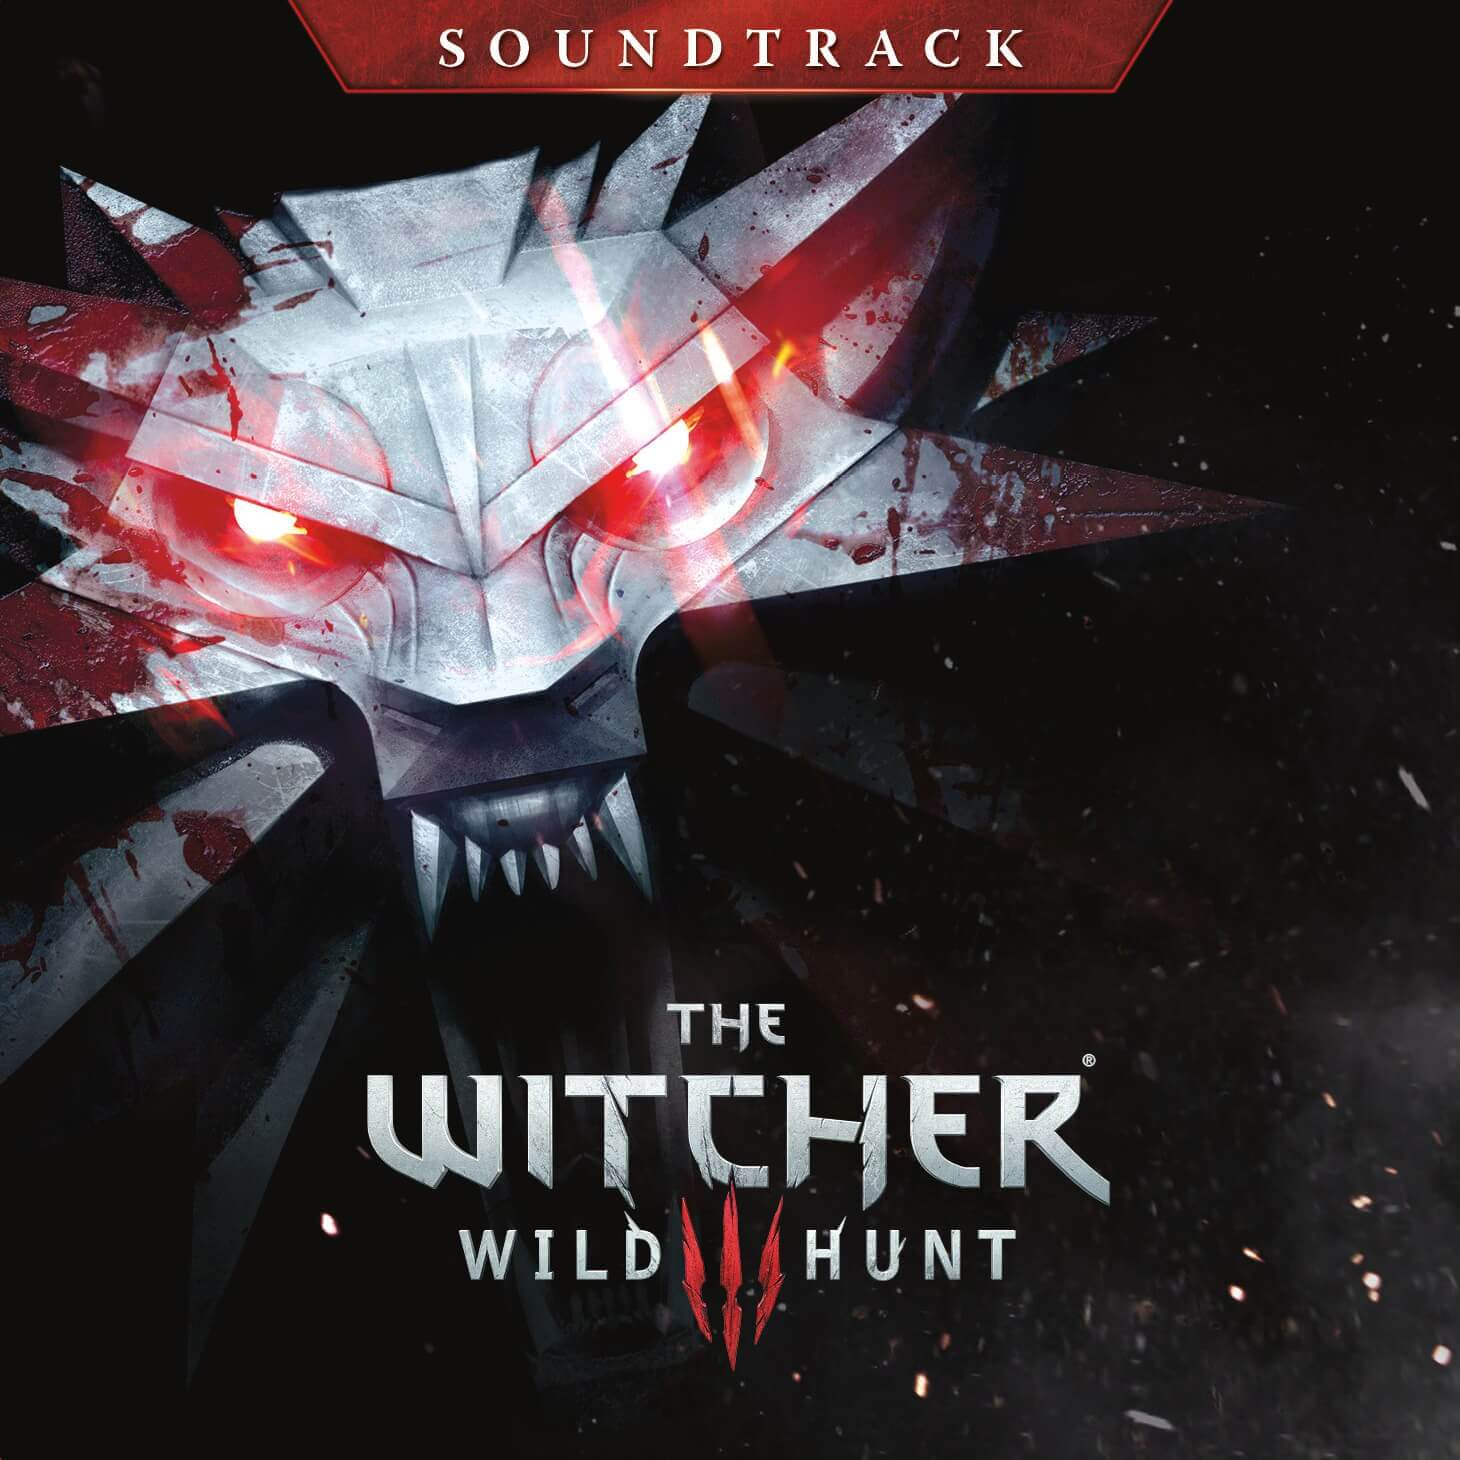 CD Projekt Red is giving away The Witcher 3 on GOG